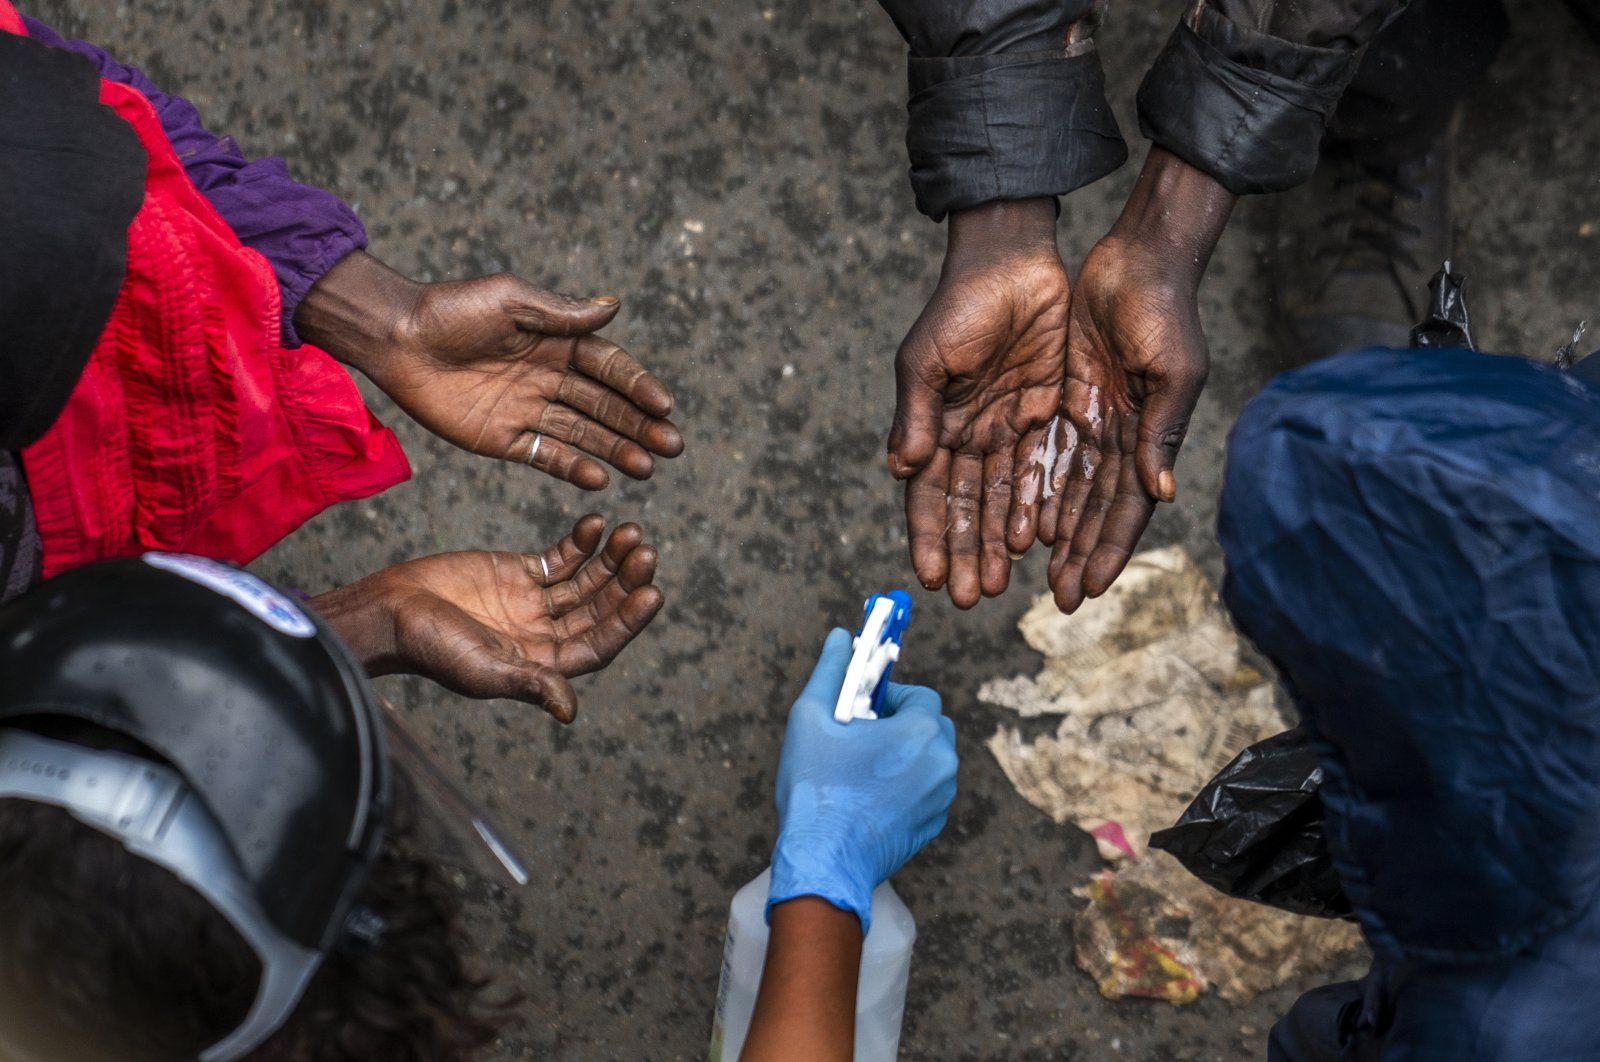 Homeless people waiting to receive food baskets from private donors get their hands sanitized in downtown Johannesburg, South Africa, April 13, 2020. (AP Photo)